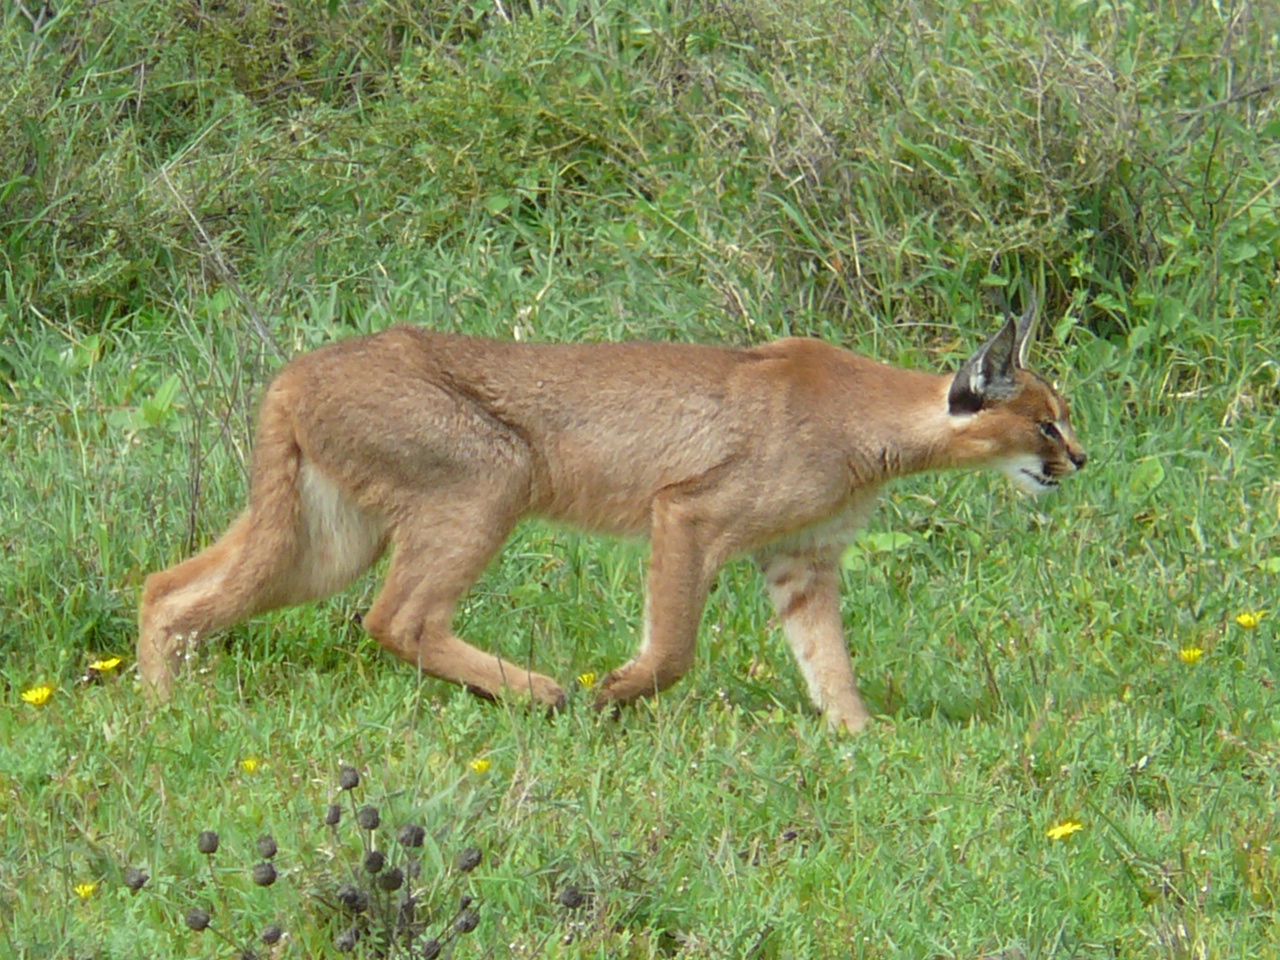 https://upload.wikimedia.org/wikipedia/commons/4/43/Caracal_hunting_in_the_serengeti.jpg